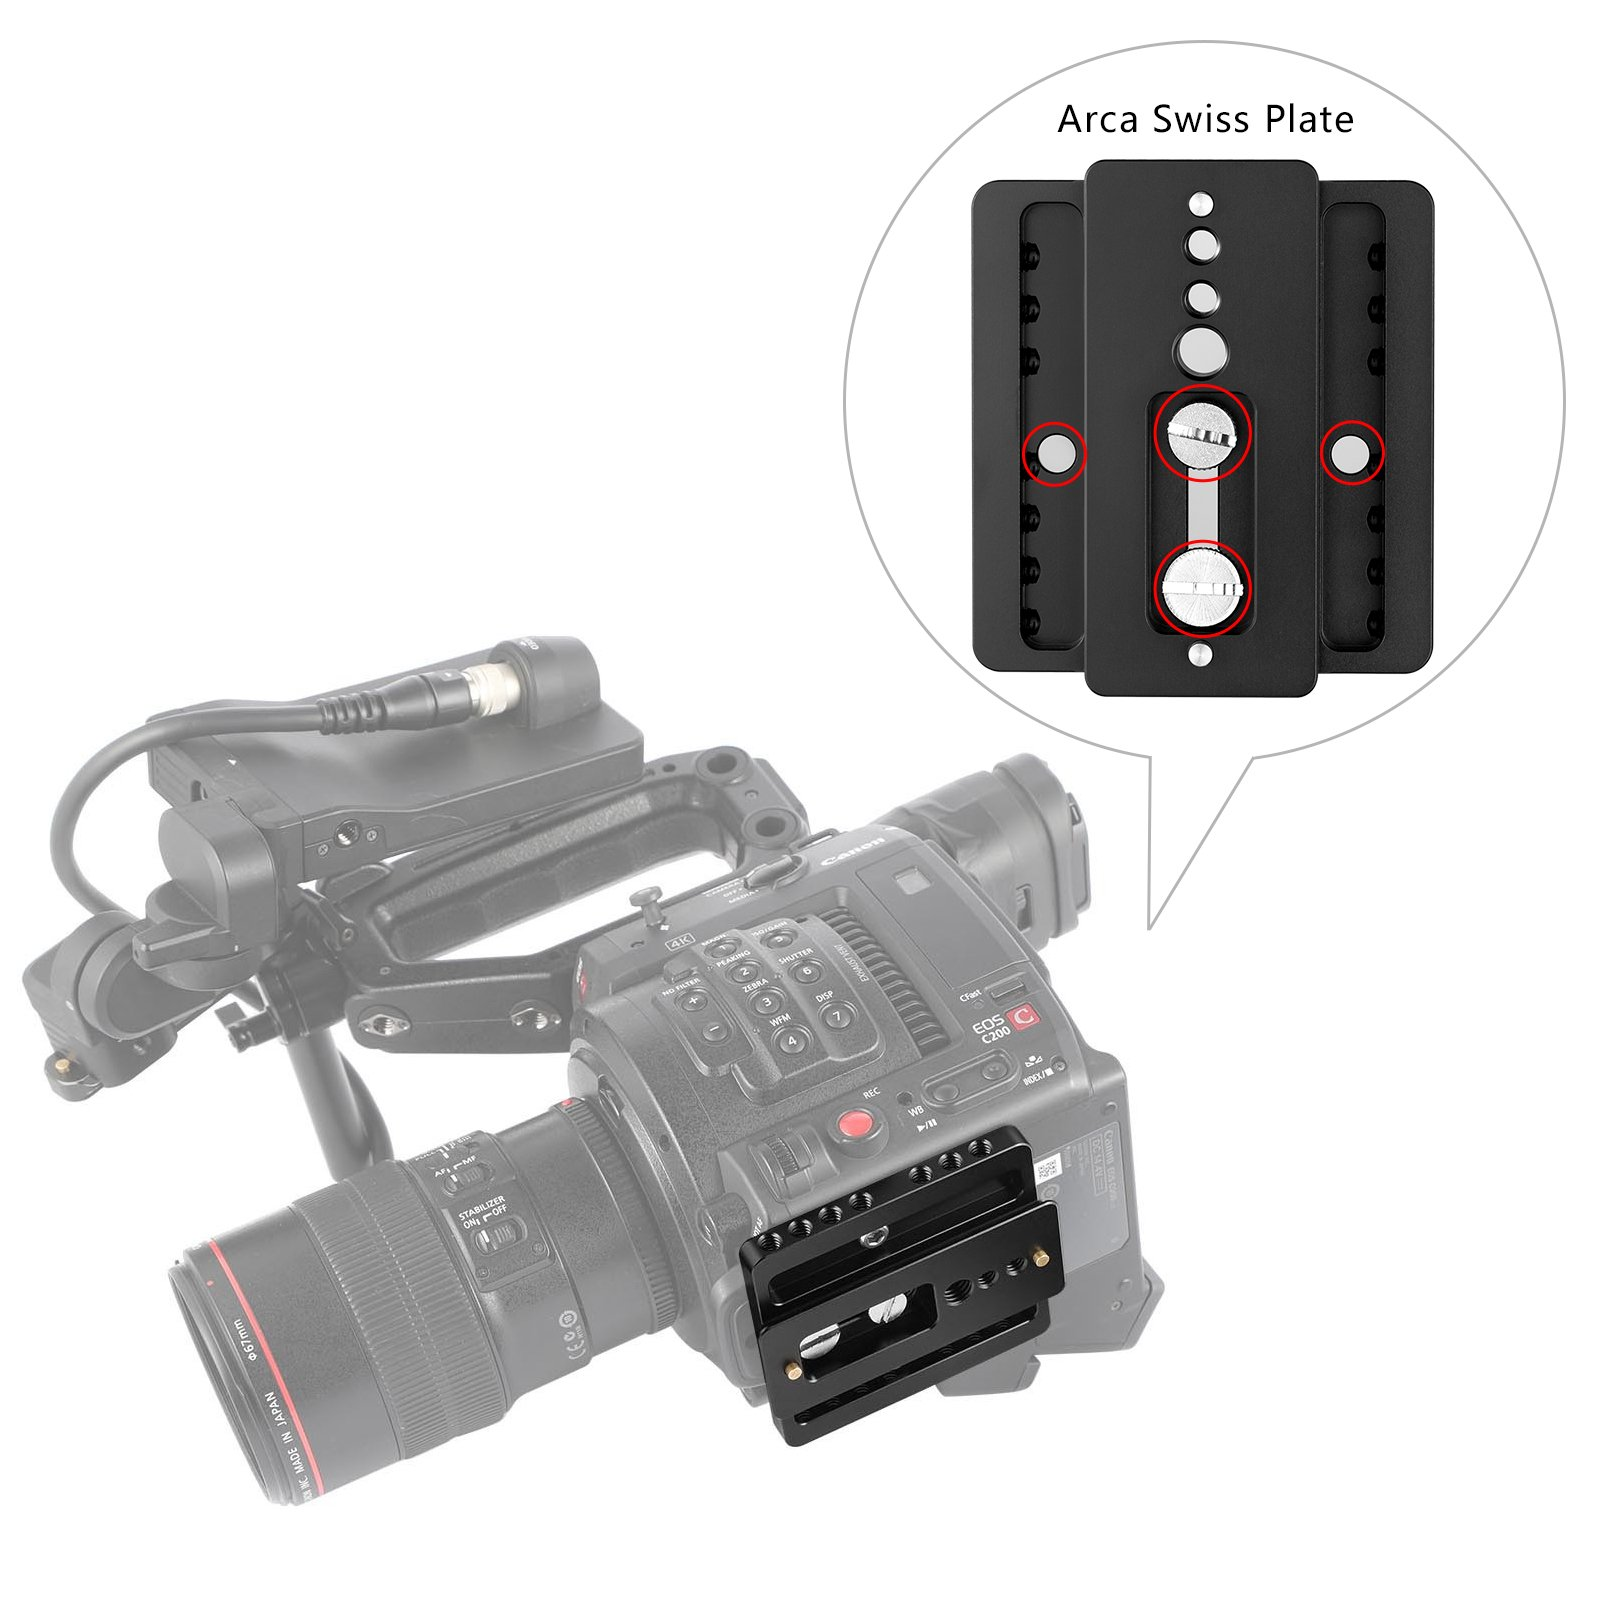 SMALLRIG Baseplate for Canon C200 and C200B with QR Plate for Arca and Dovetail for Arri–2076 by SMALLRIG (Image #4)